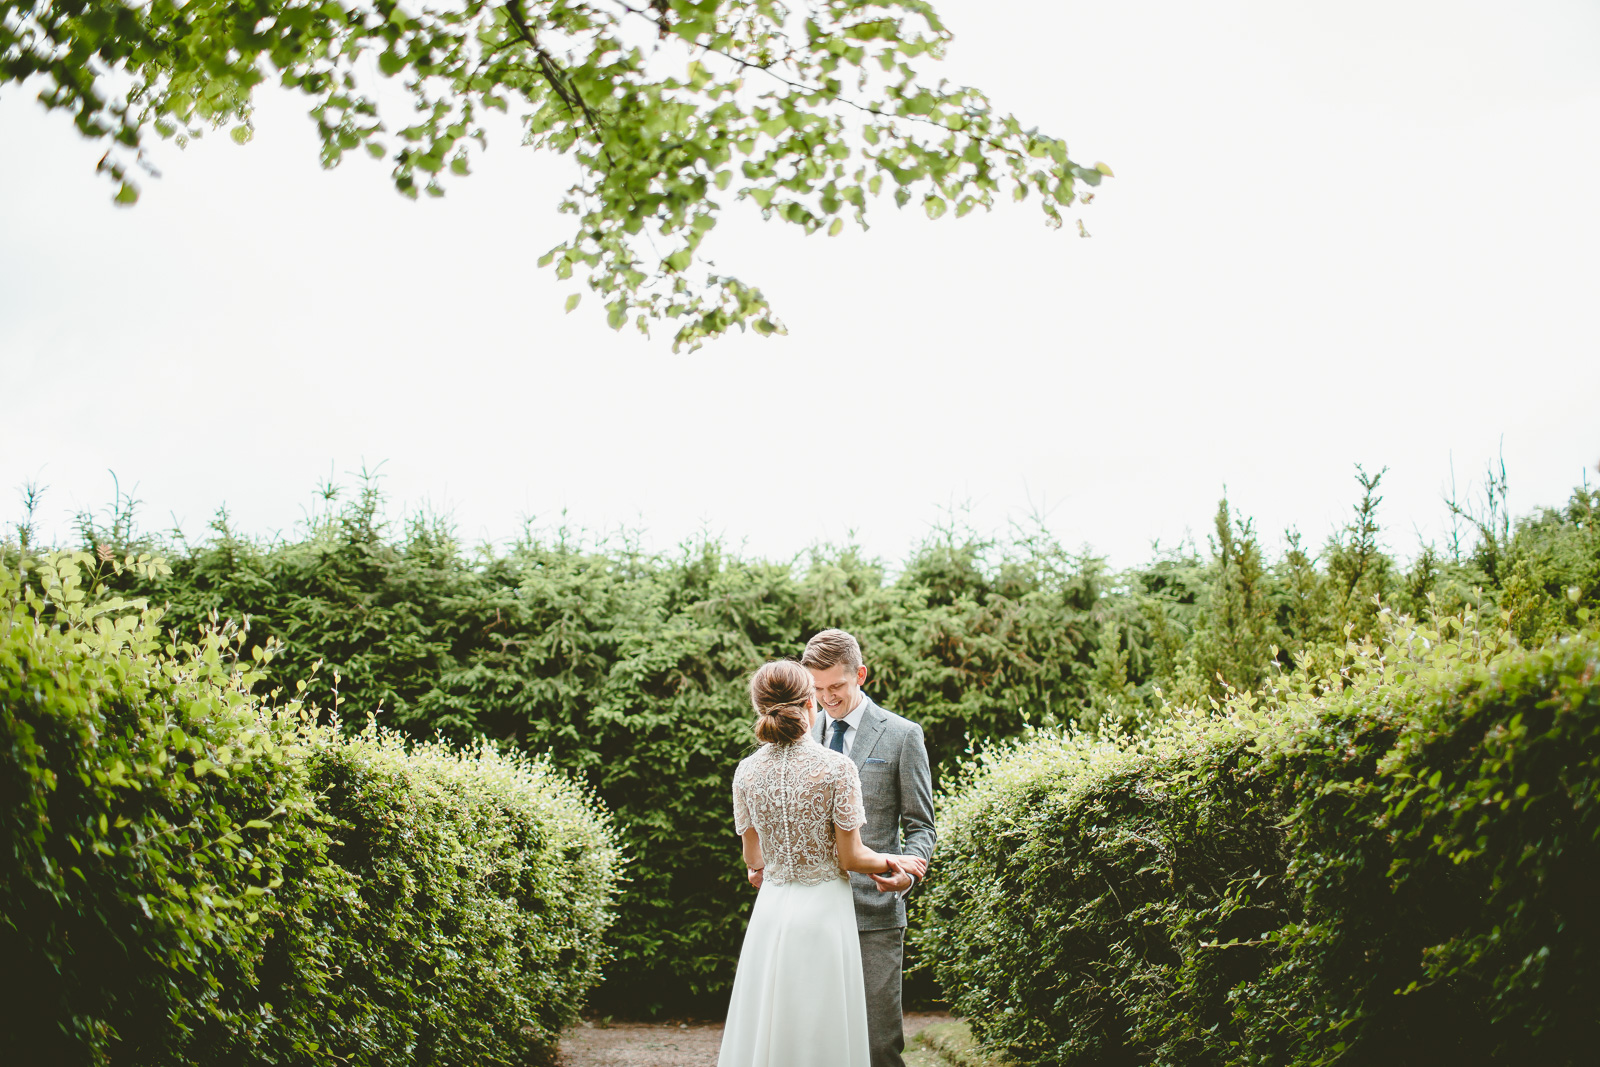 First look - Cloudy day - Hedges converge around them drawing you towards the couple, while the overhead tree breaks up the empty sky.